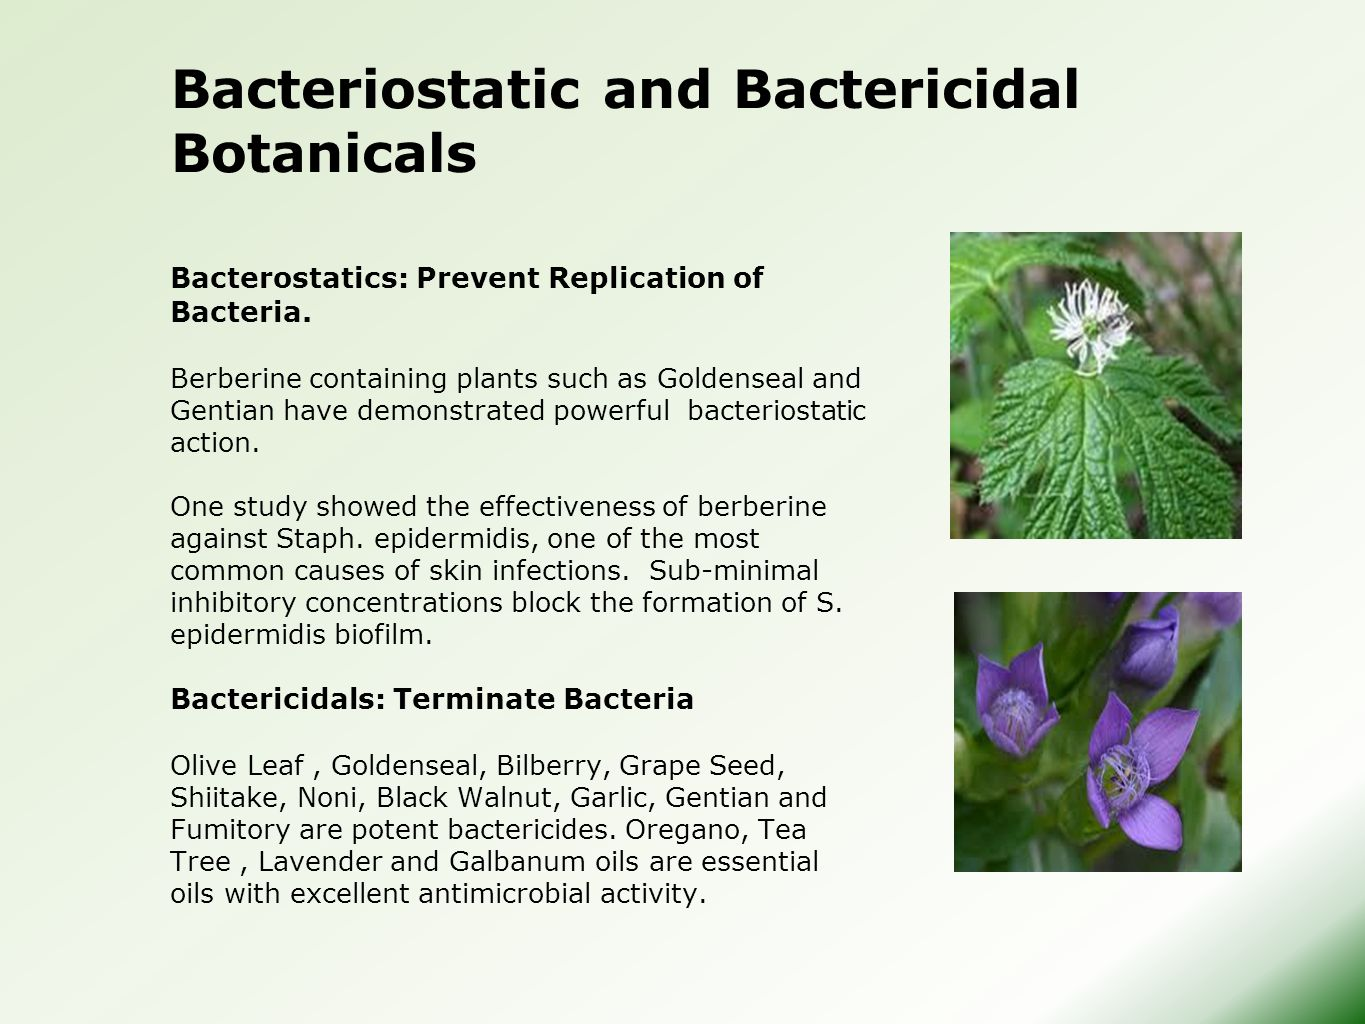 Bacterostatics: Prevent Replication of Bacteria. Berberine containing plants such as Goldenseal and Gentian have demonstrated powerful bacteriostatic